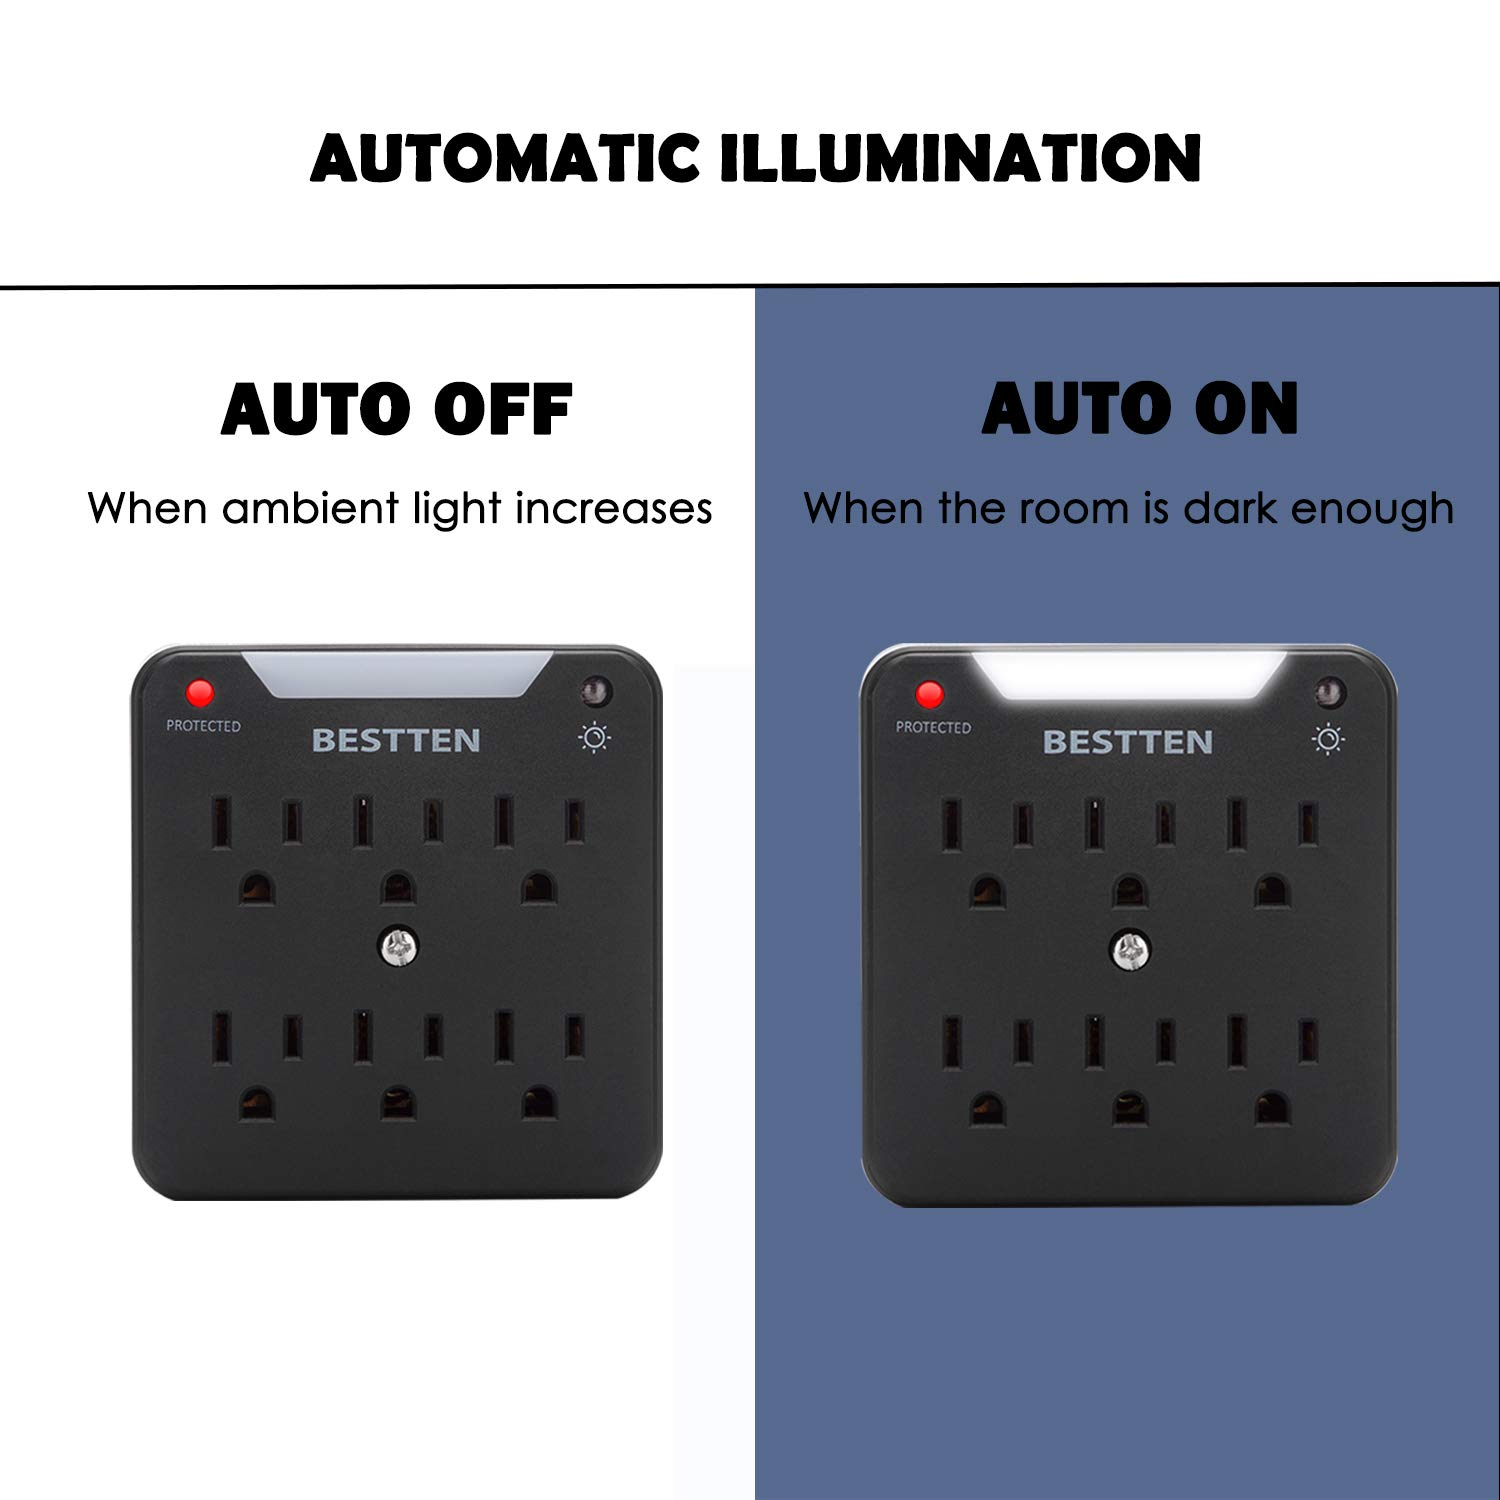 2 Pack BESTTEN 900-Joule Wall Mount Surge Protector, 6-Outlet Extender with Auto LED Night Light, Dusk to Dawn Photocell Sensor, ETL Certified, Black